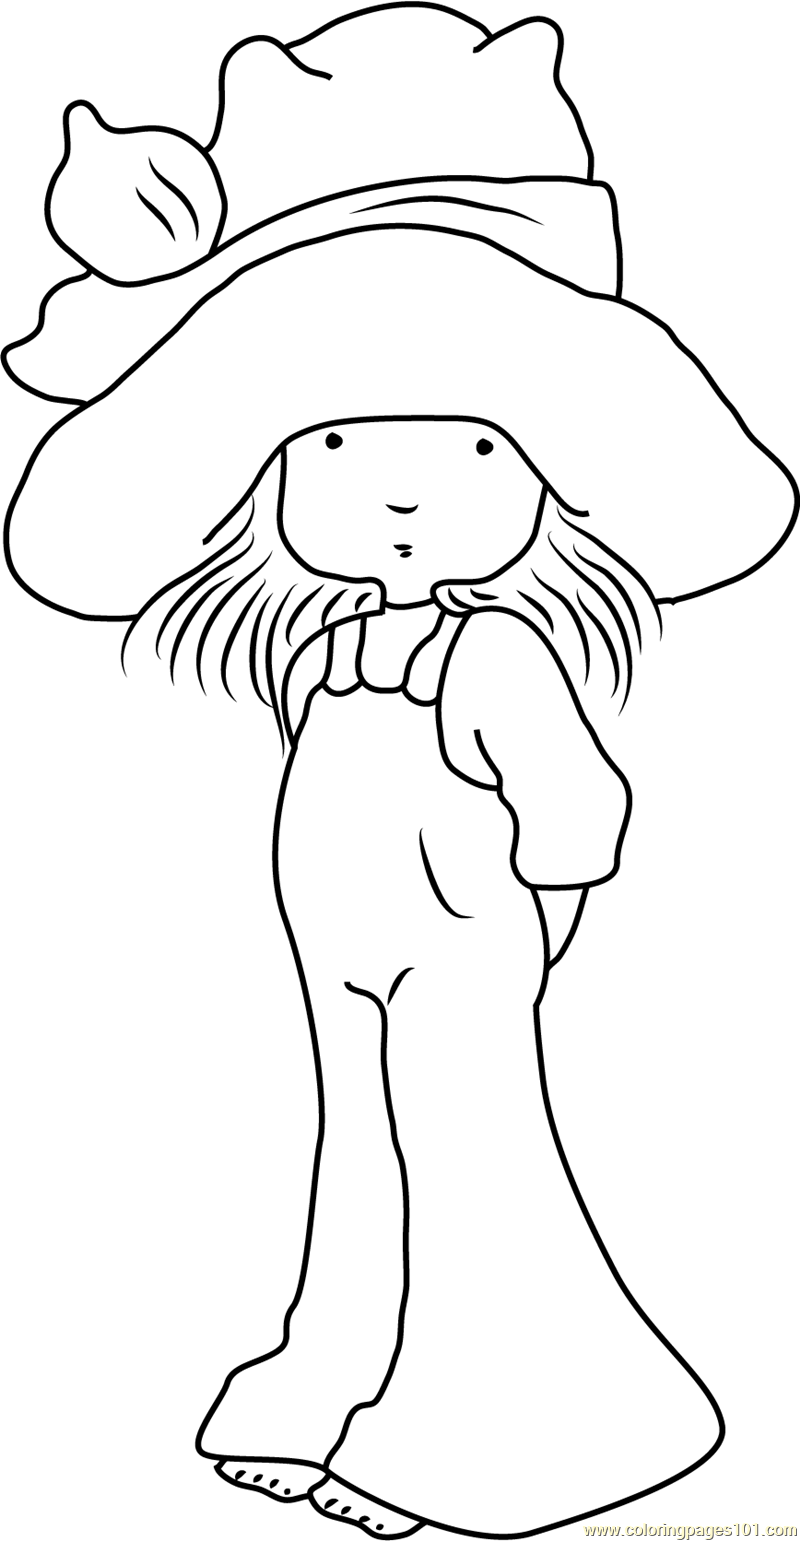 Cute holly hobbie coloring page free holly hobbie for Holly hobbie coloring pages